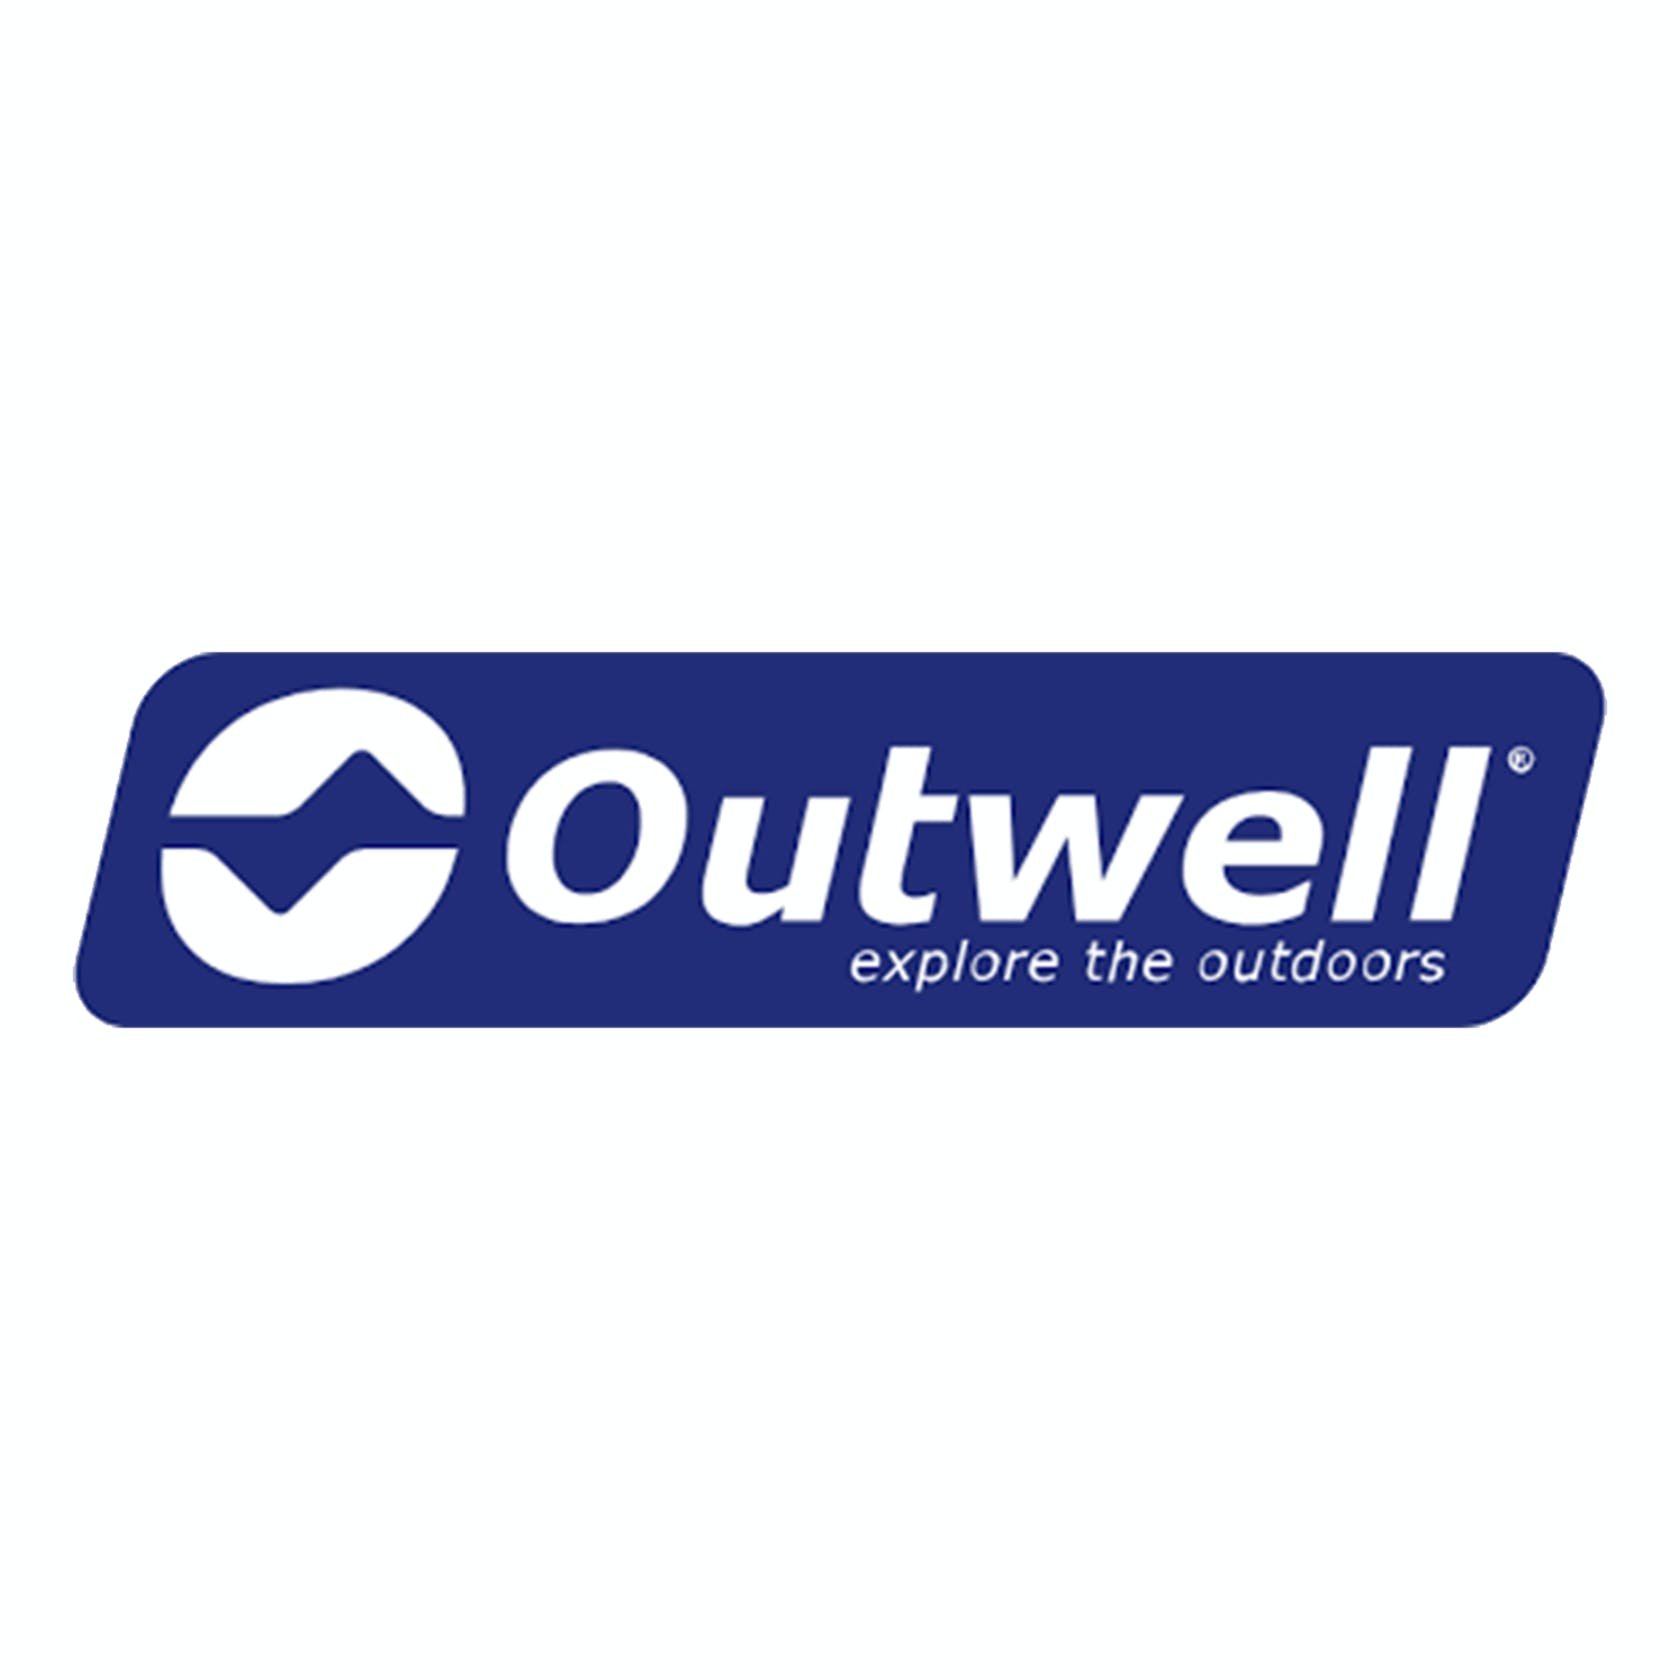 Outwell shop online